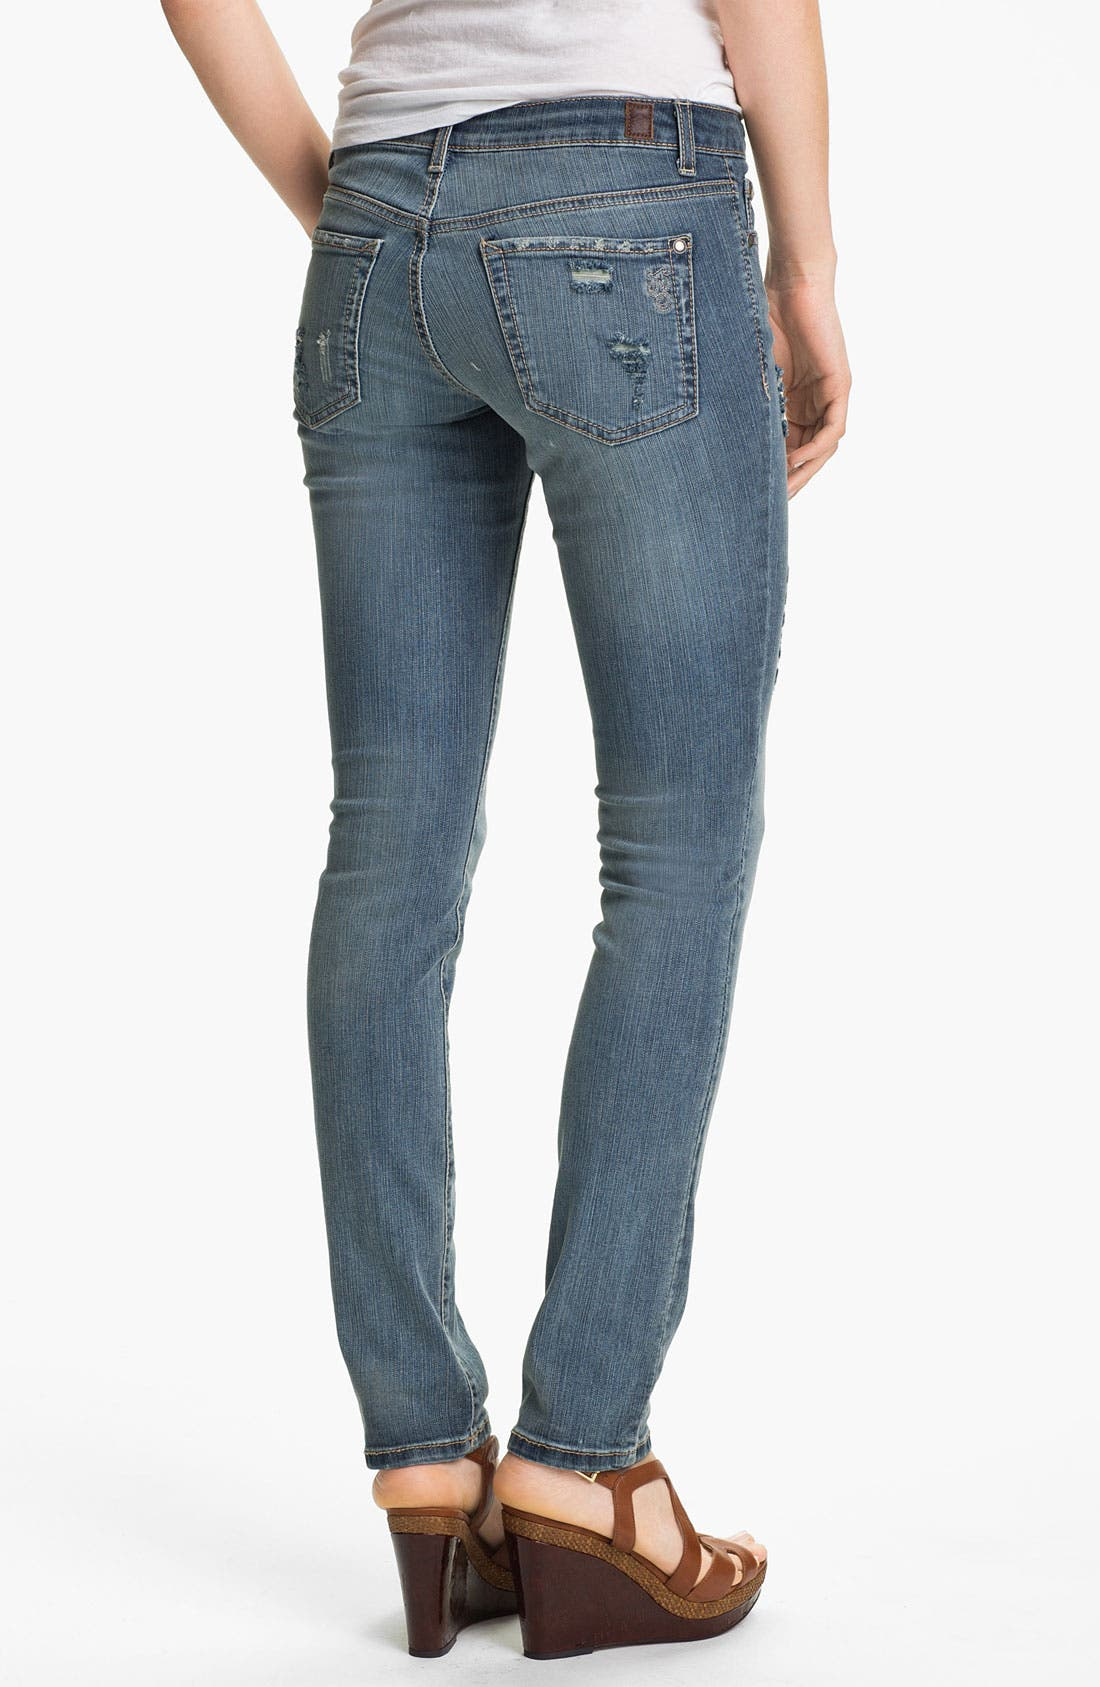 Alternate Image 3  - Jessica Simpson 'Kiss Me' Deconstructed Skinny Jeans (District) (Online Only)